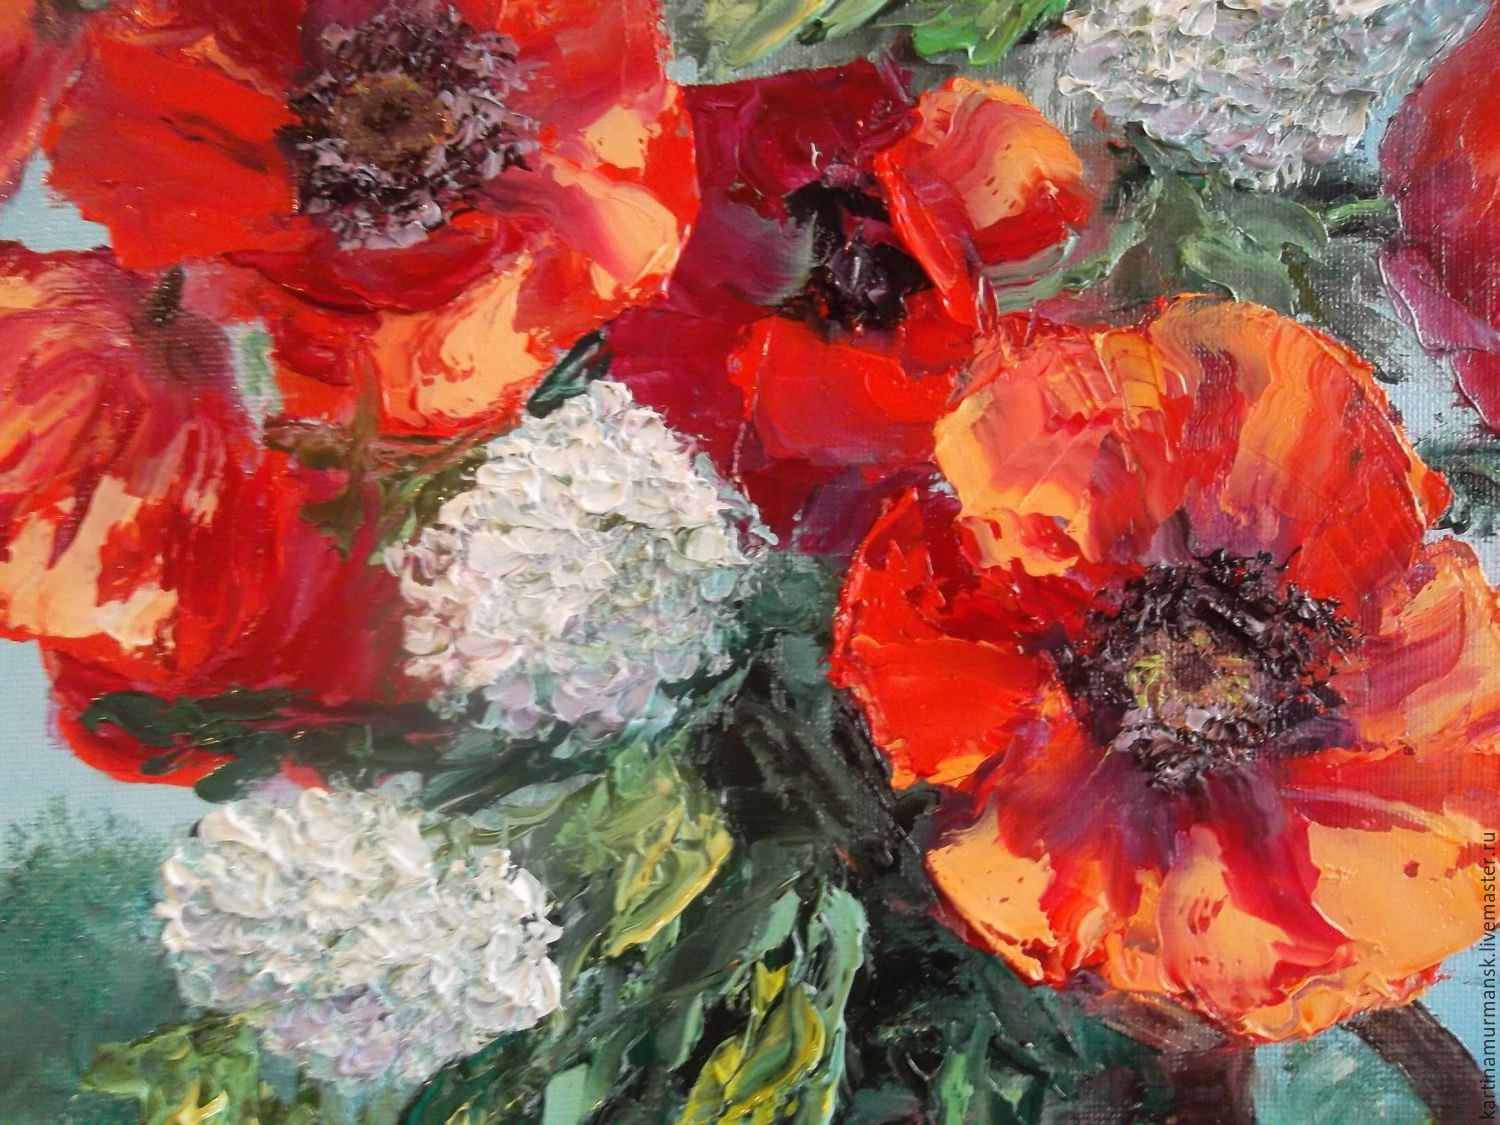 Oil painting with poppies flowers 5040 poppies in the country order oil painting with poppies flowers 5040 poppies in mightylinksfo